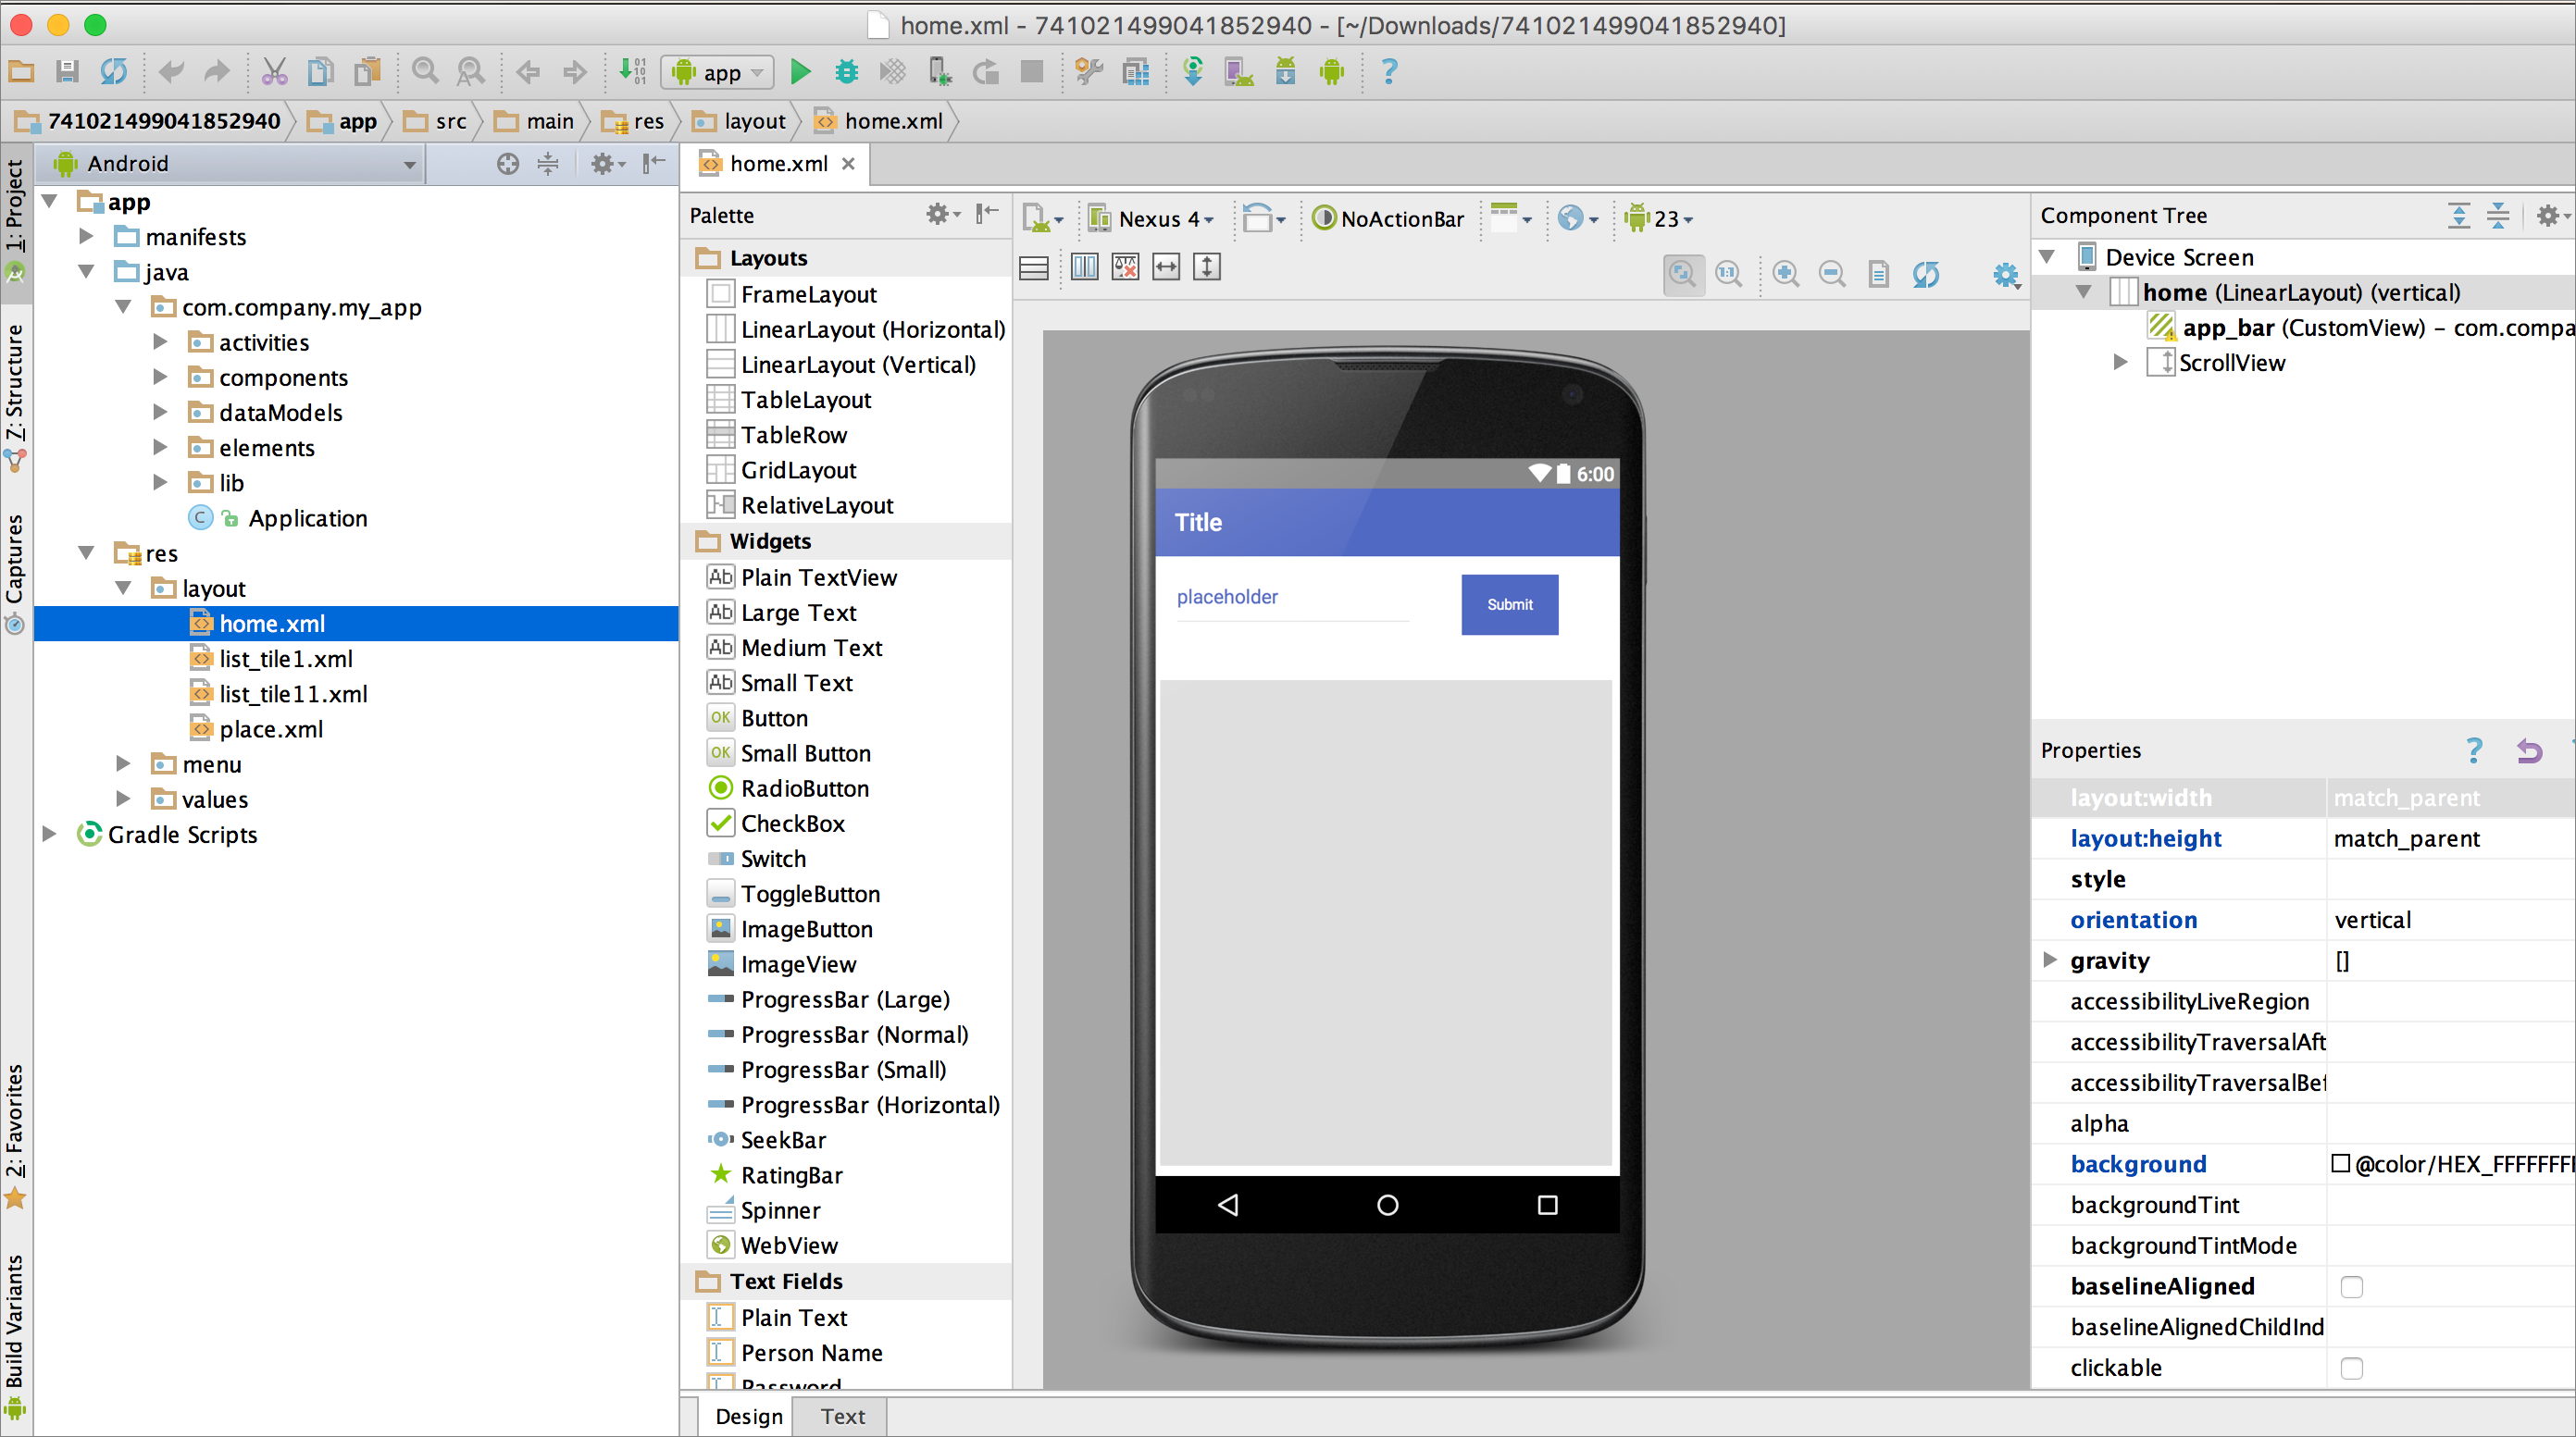 Importing Source Code into Android Studio - Dropsource Help